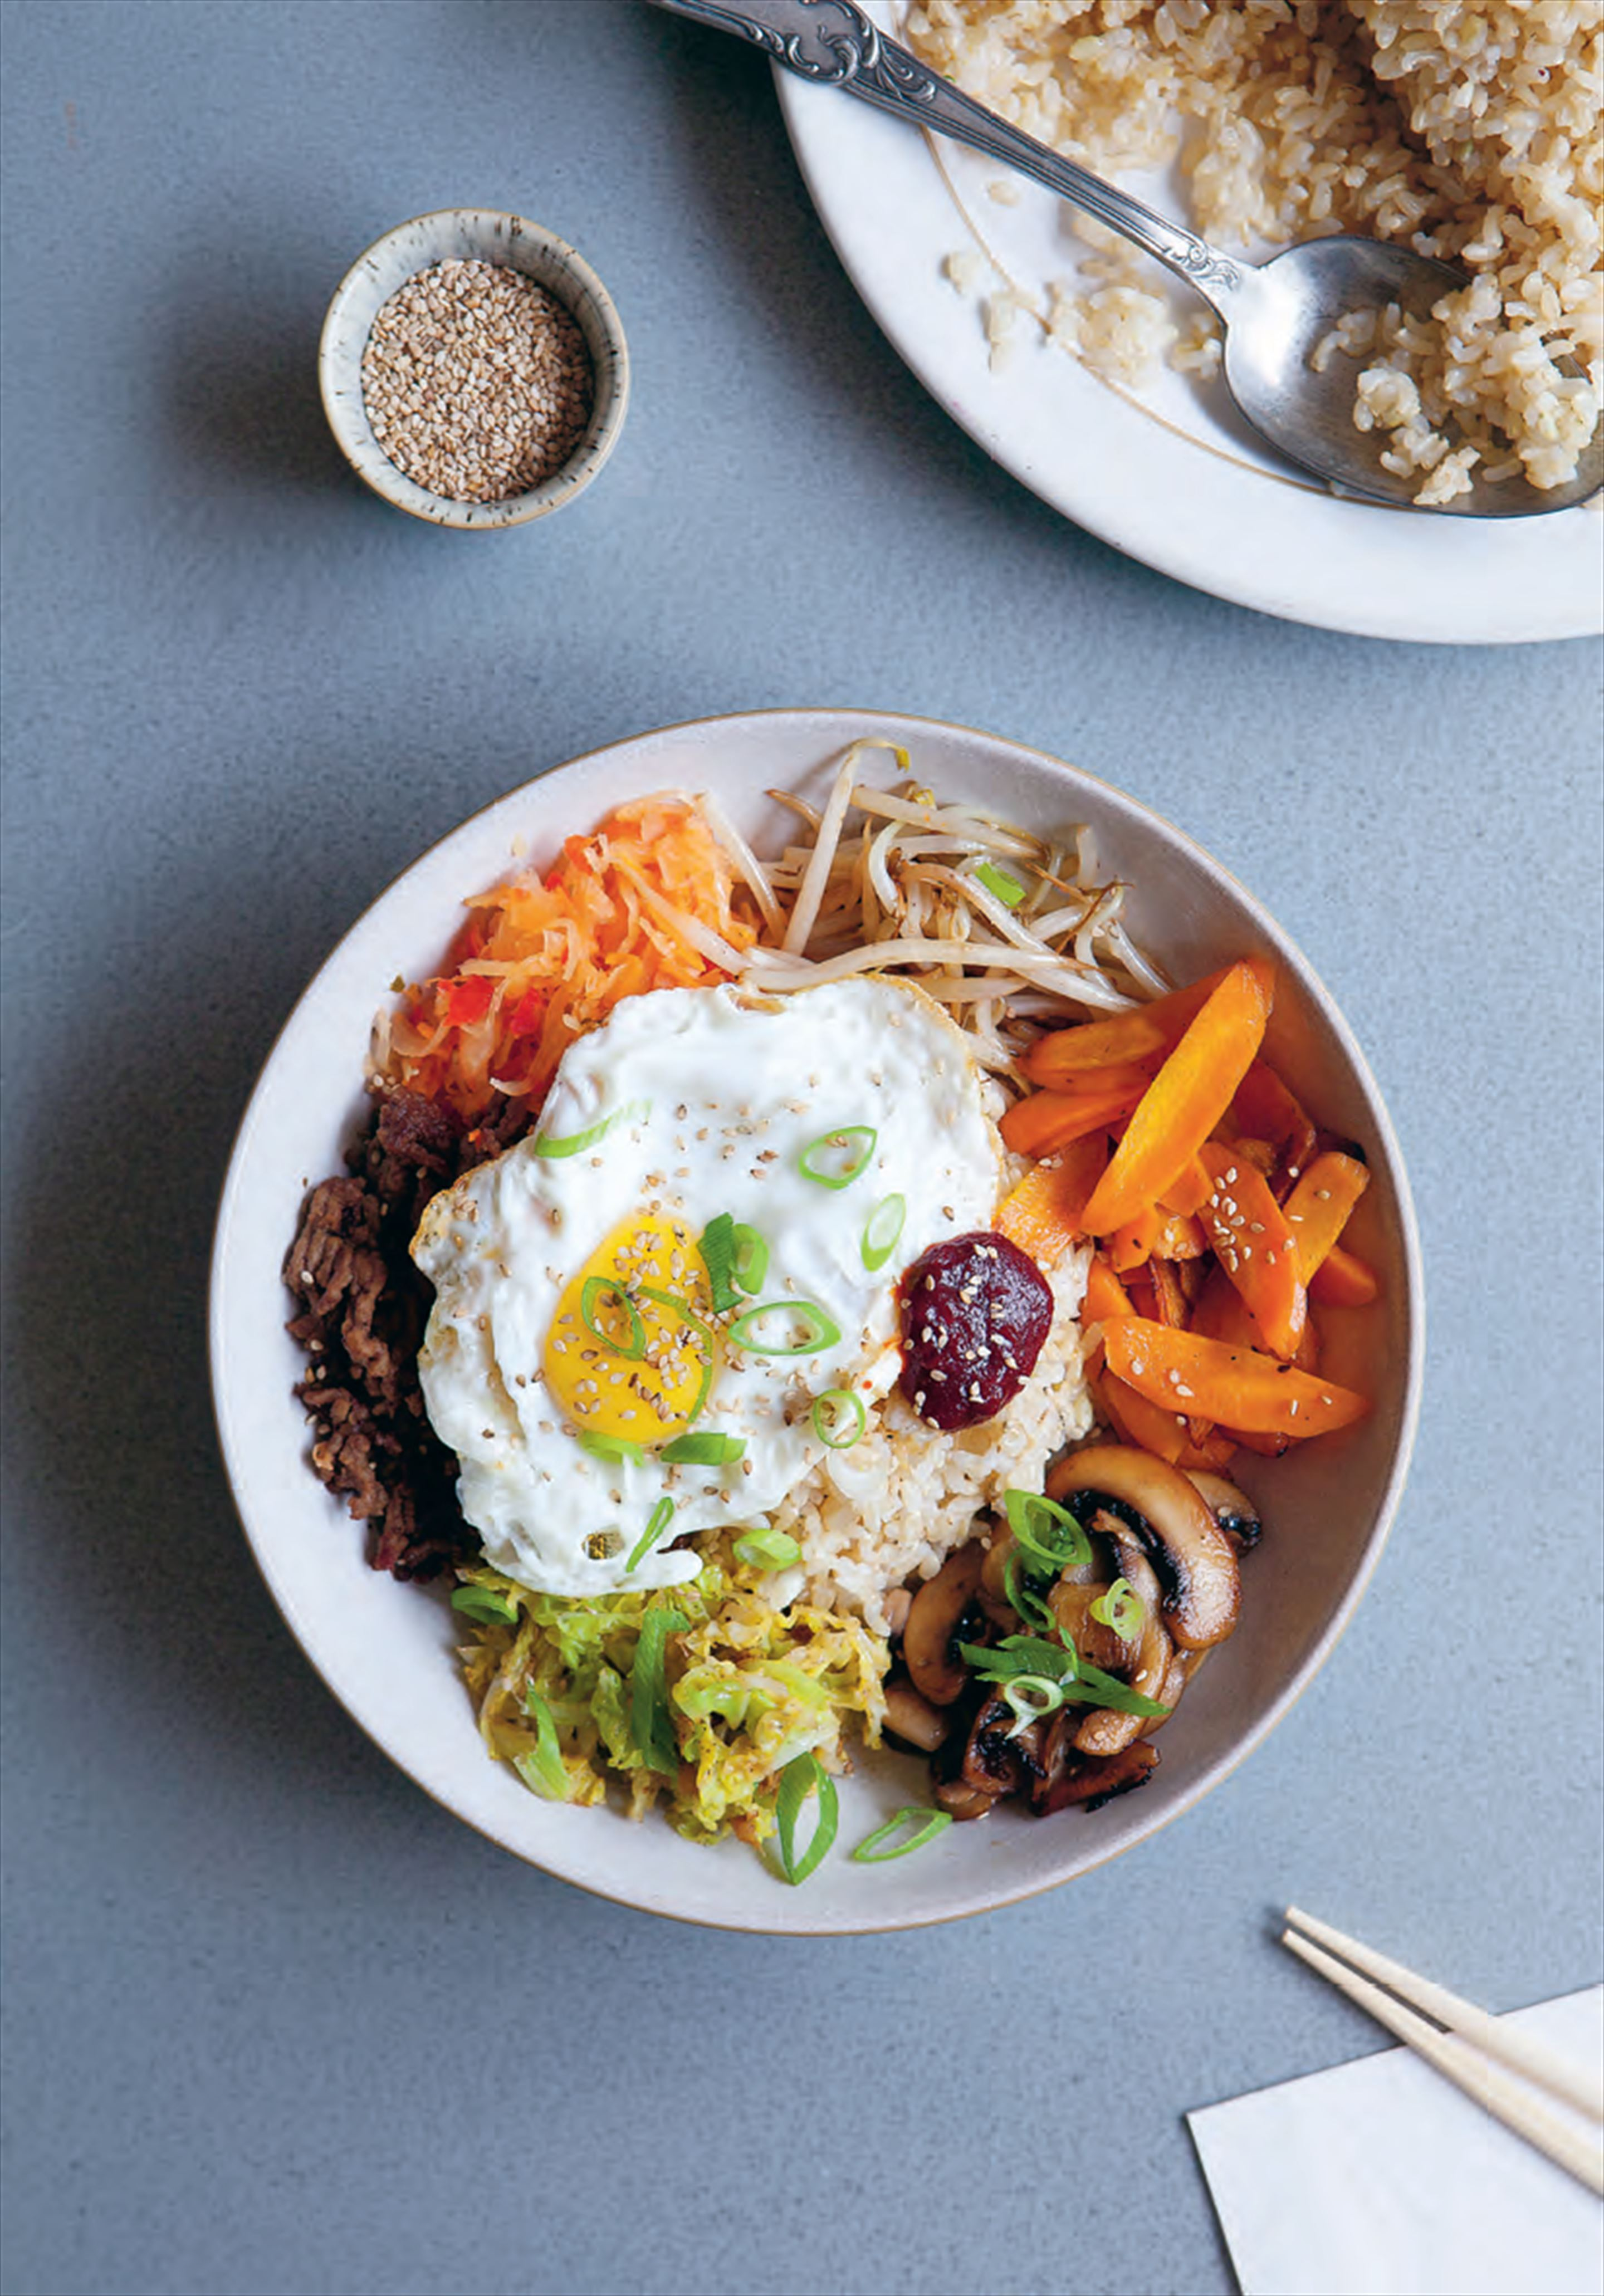 Brown rice bibimbap